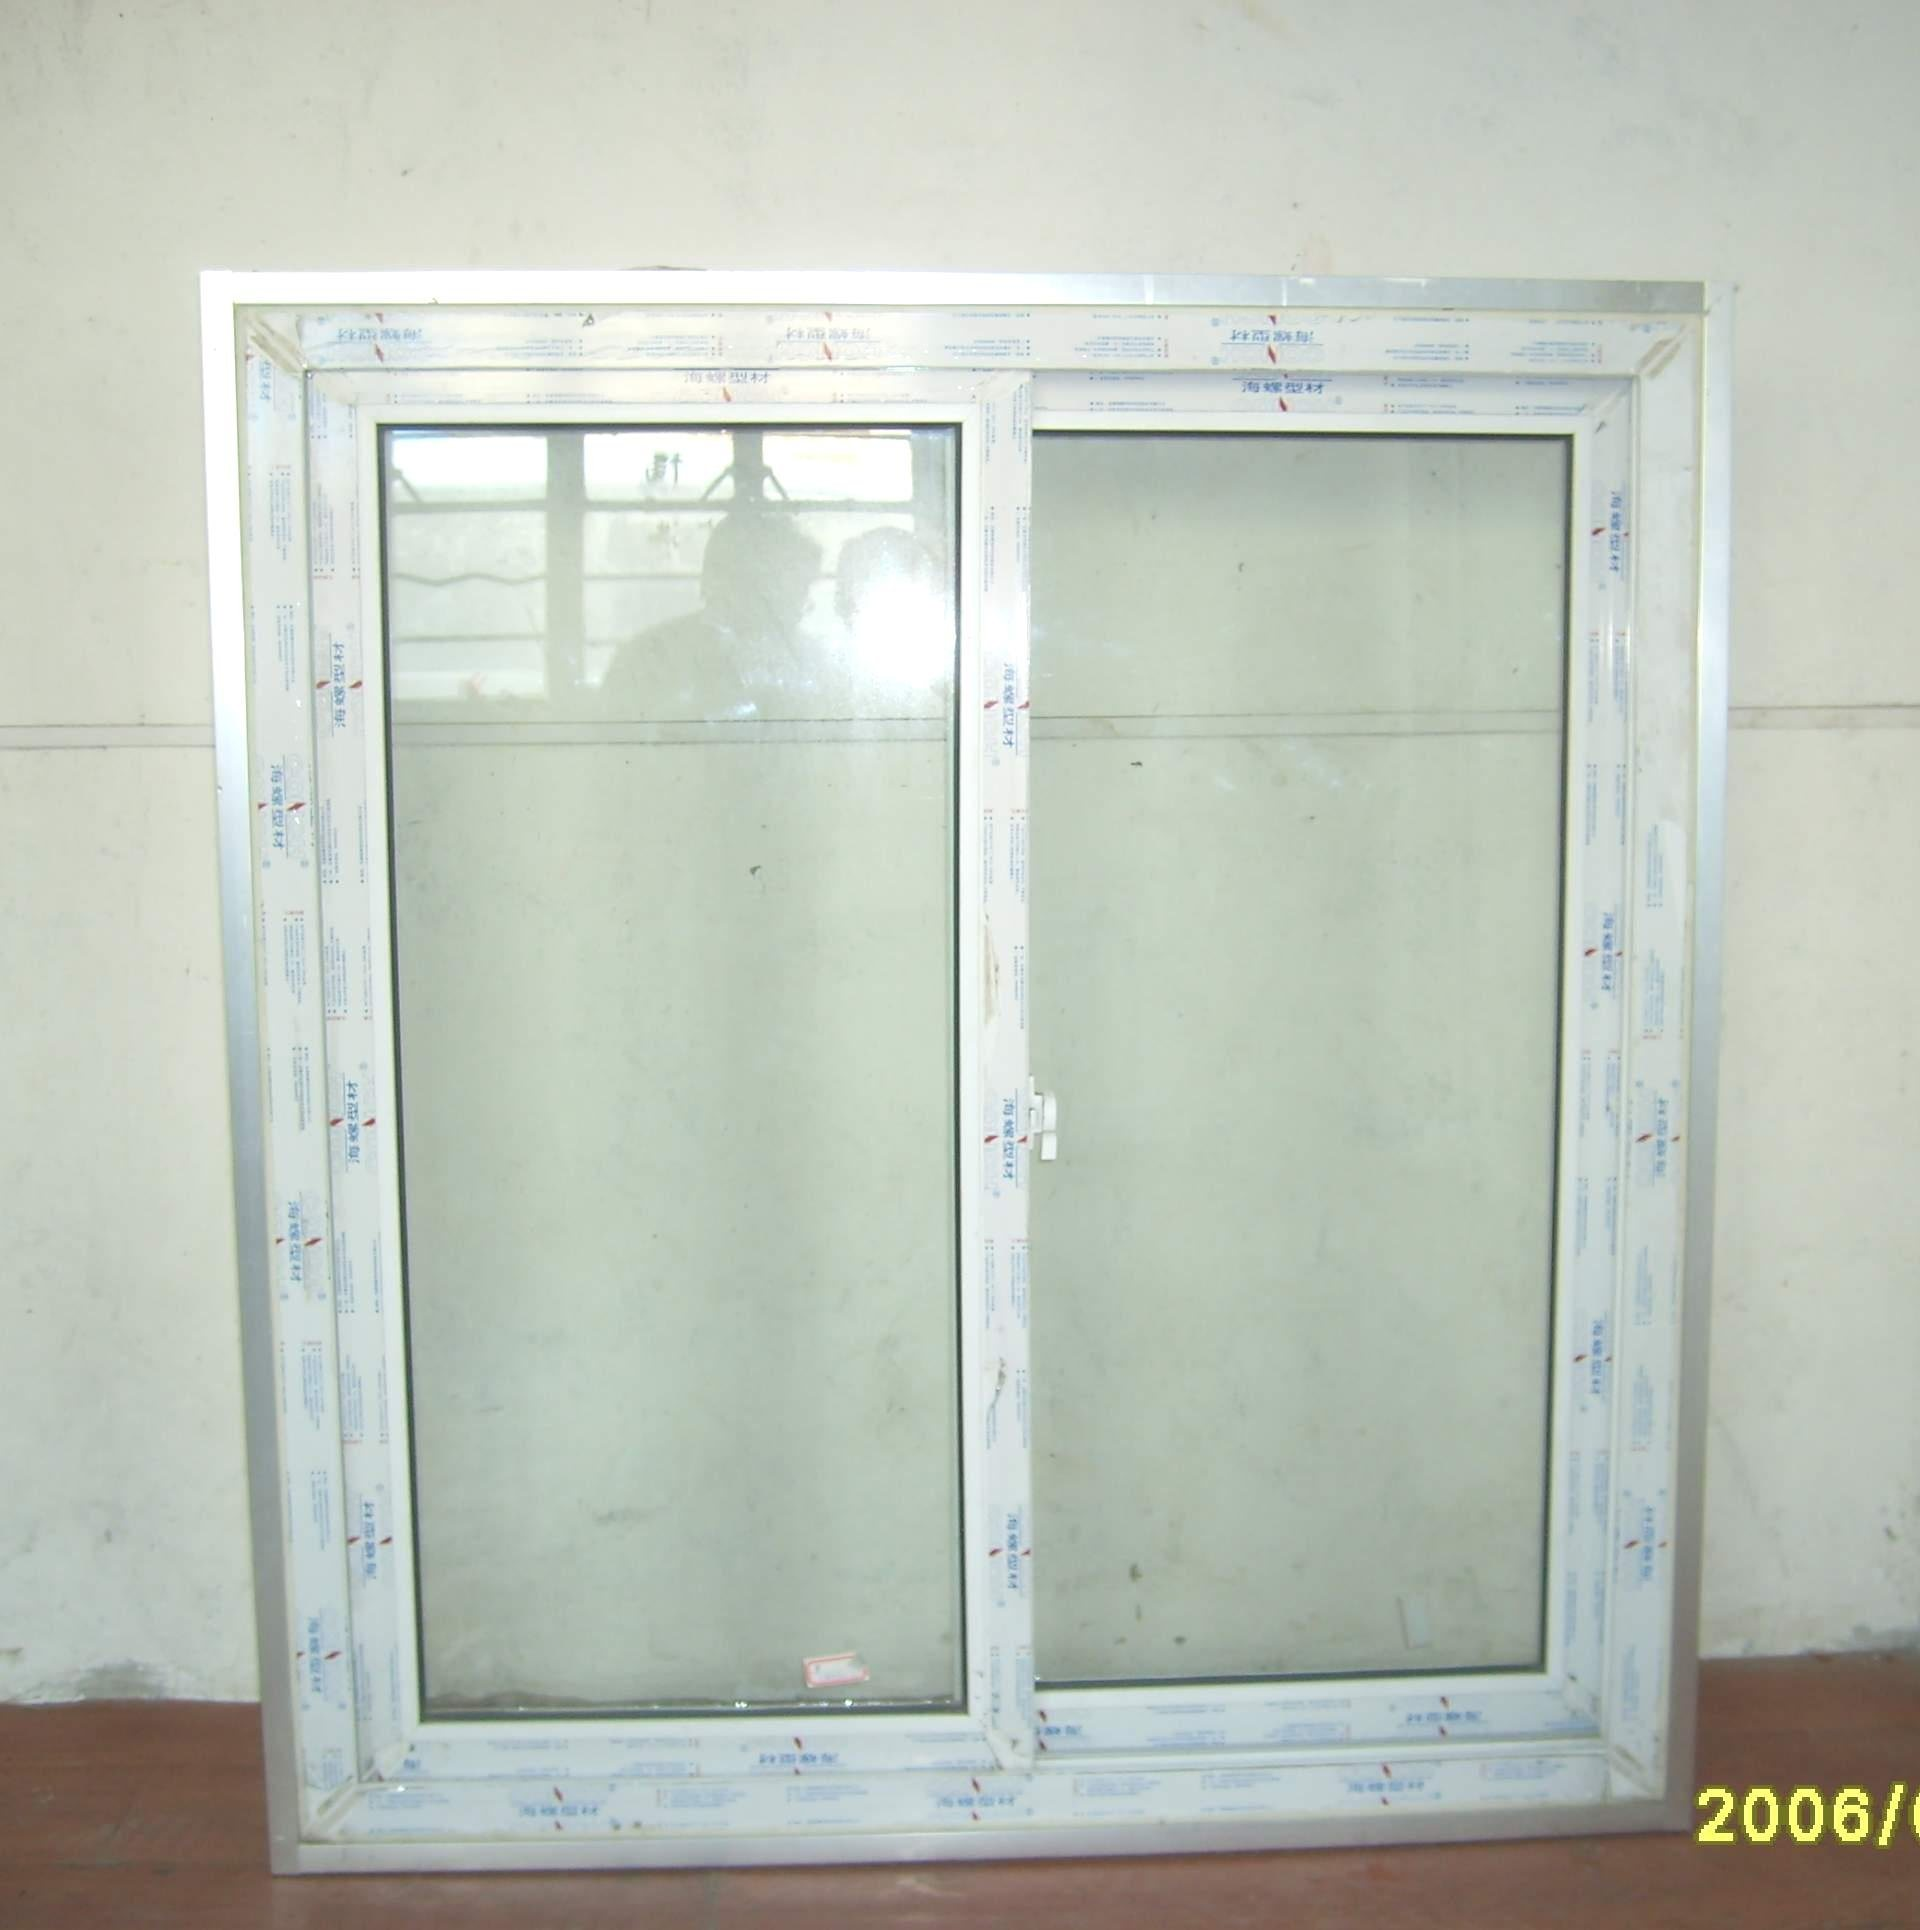 Pvc Windows Product : China pvc sliding window w photos pictures